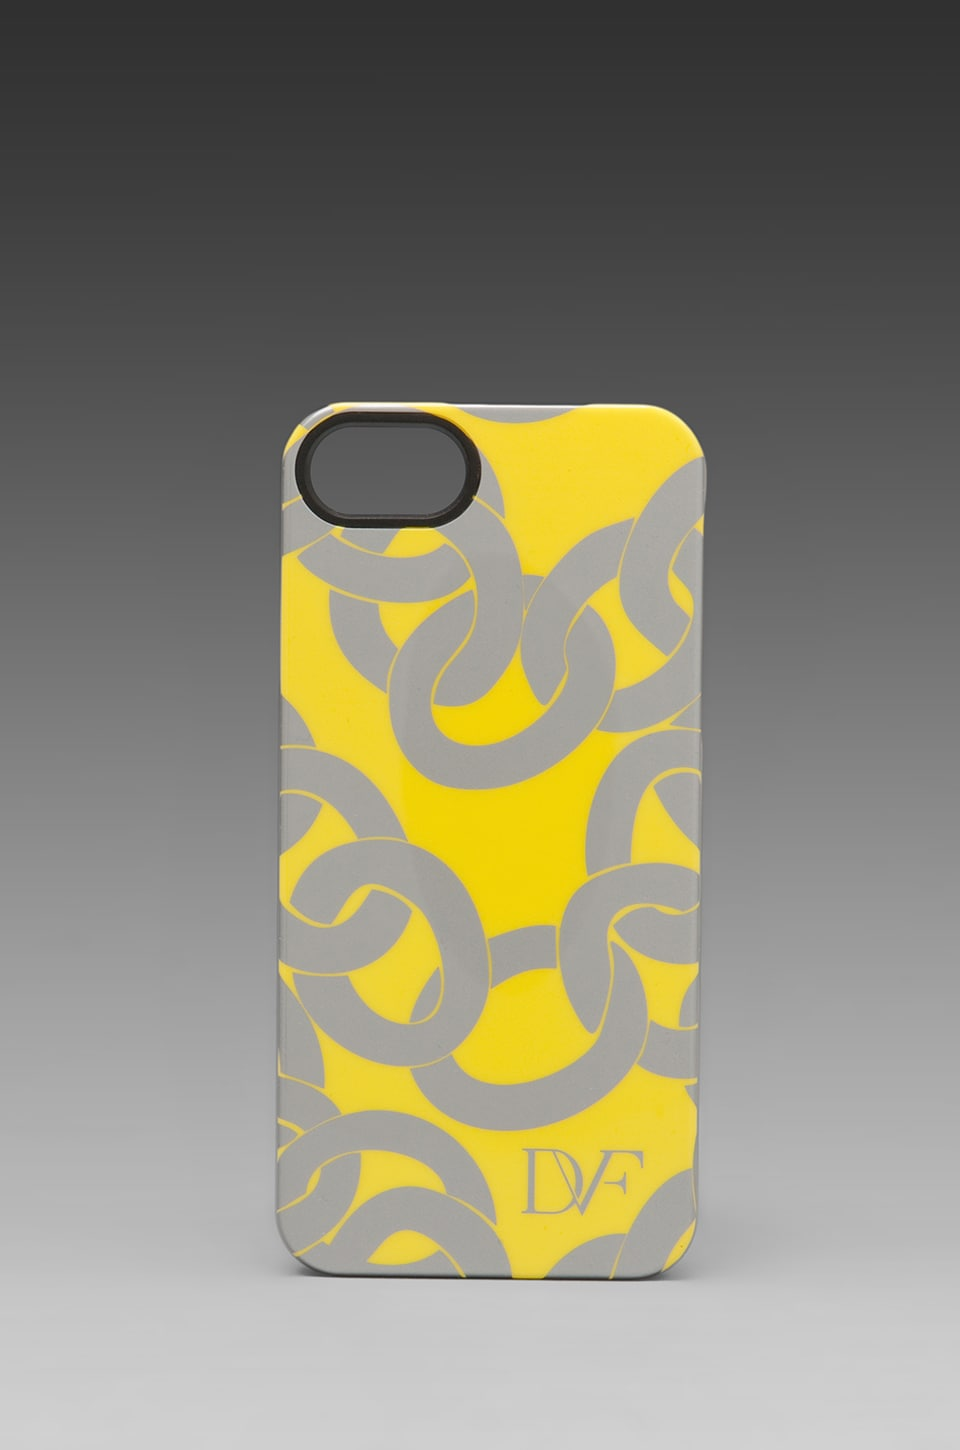 Diane von Furstenberg Iphone Case in Metallic Chains Yellow/Sliver